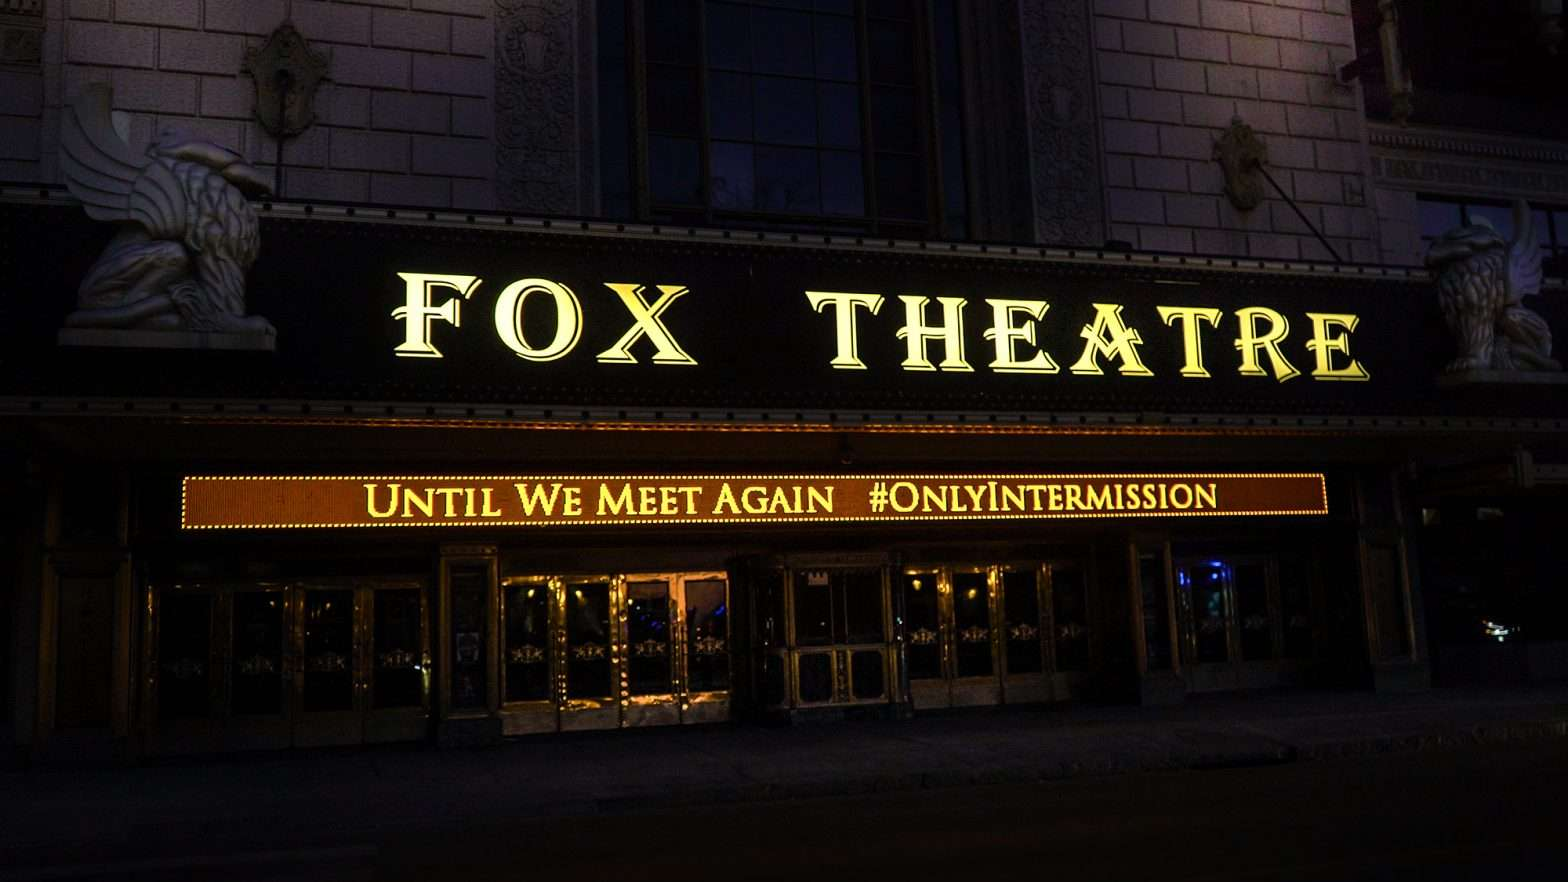 Fox Theatre until we meet again on marquee during pandemic in Grand Center St. Louis Feb. 2021. credit craig currie